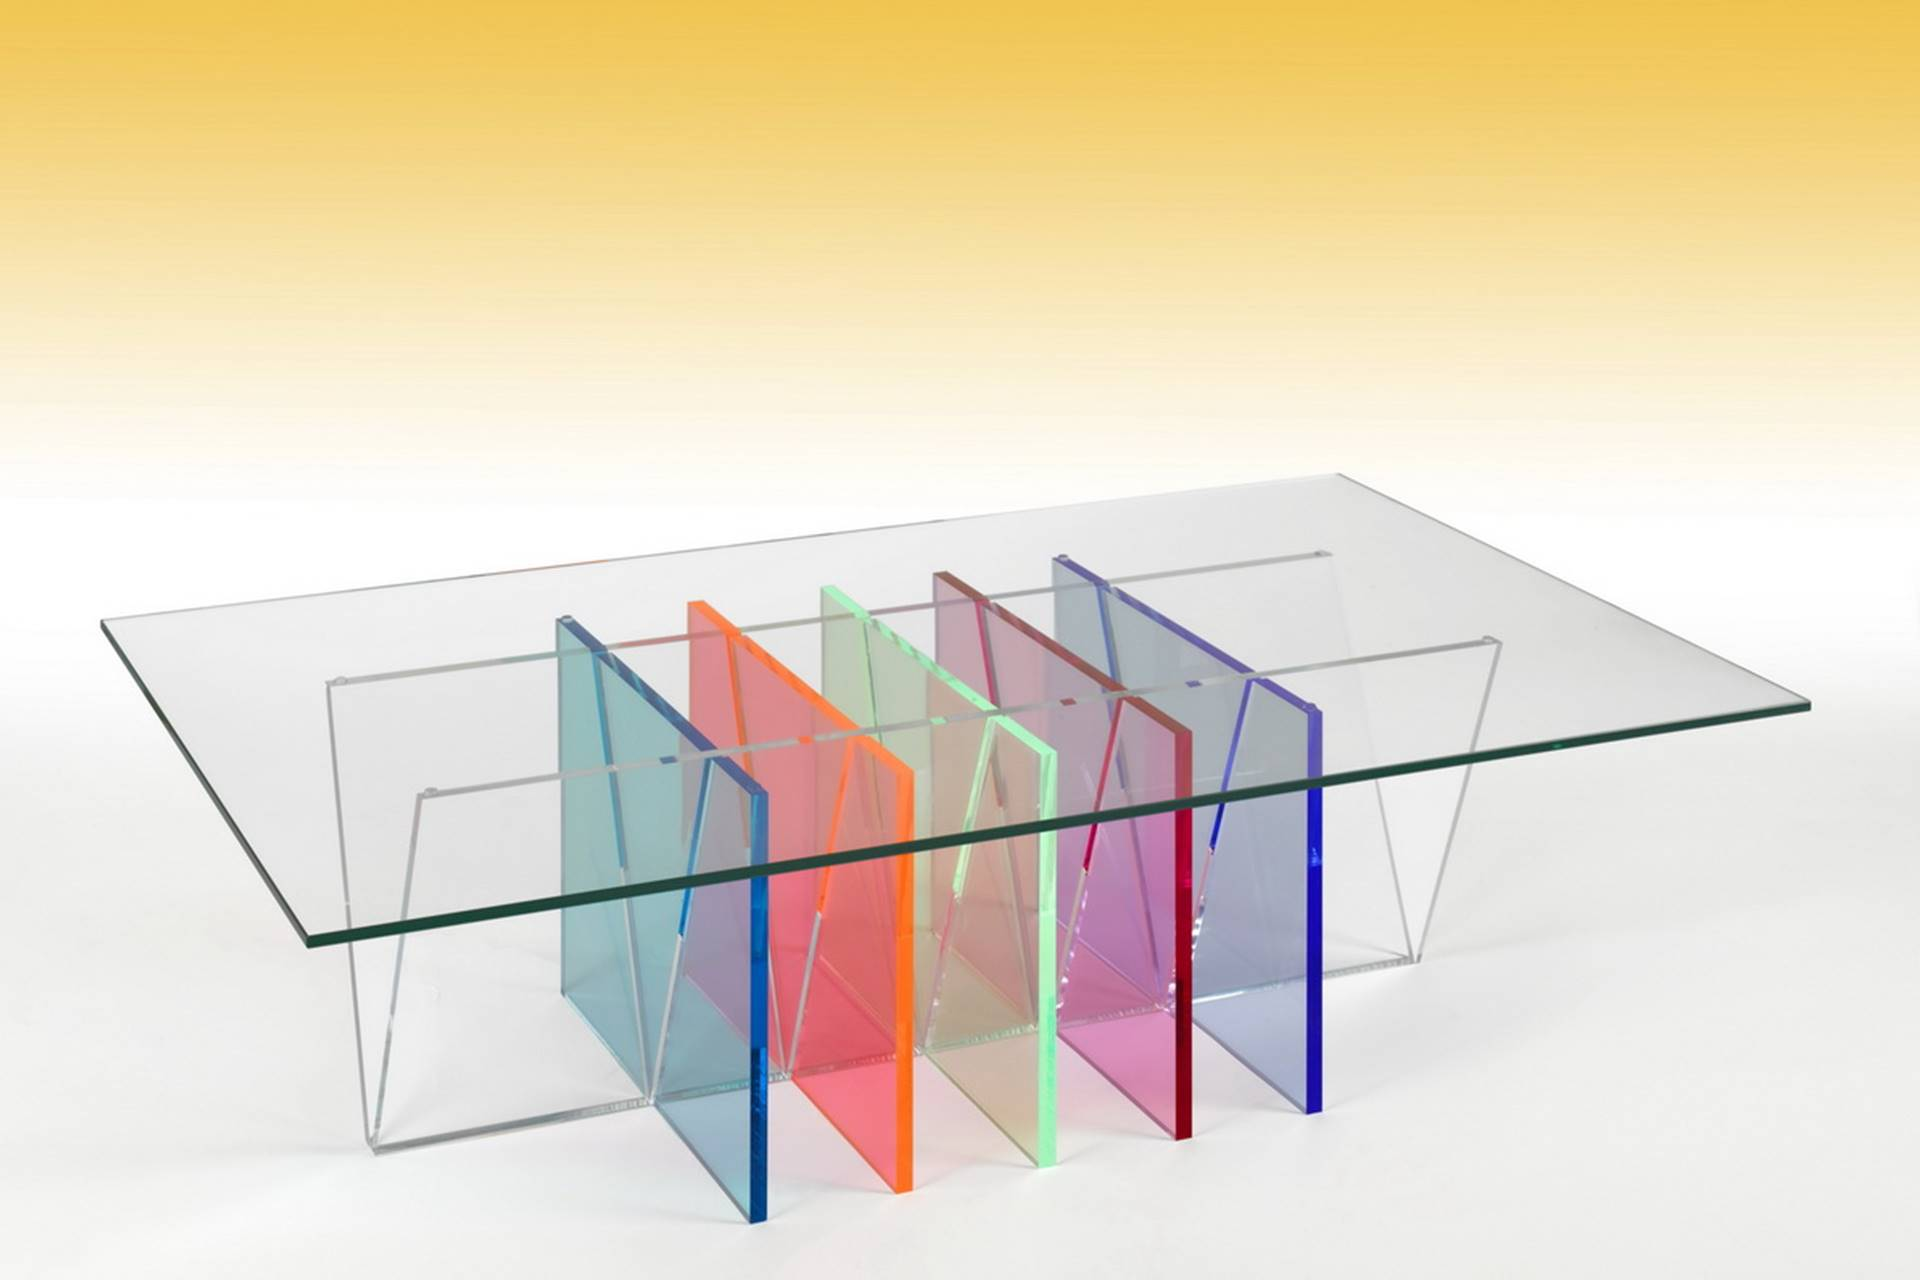 Meubles Tables Story Tables Basses Meubles jLqSVGzMpU